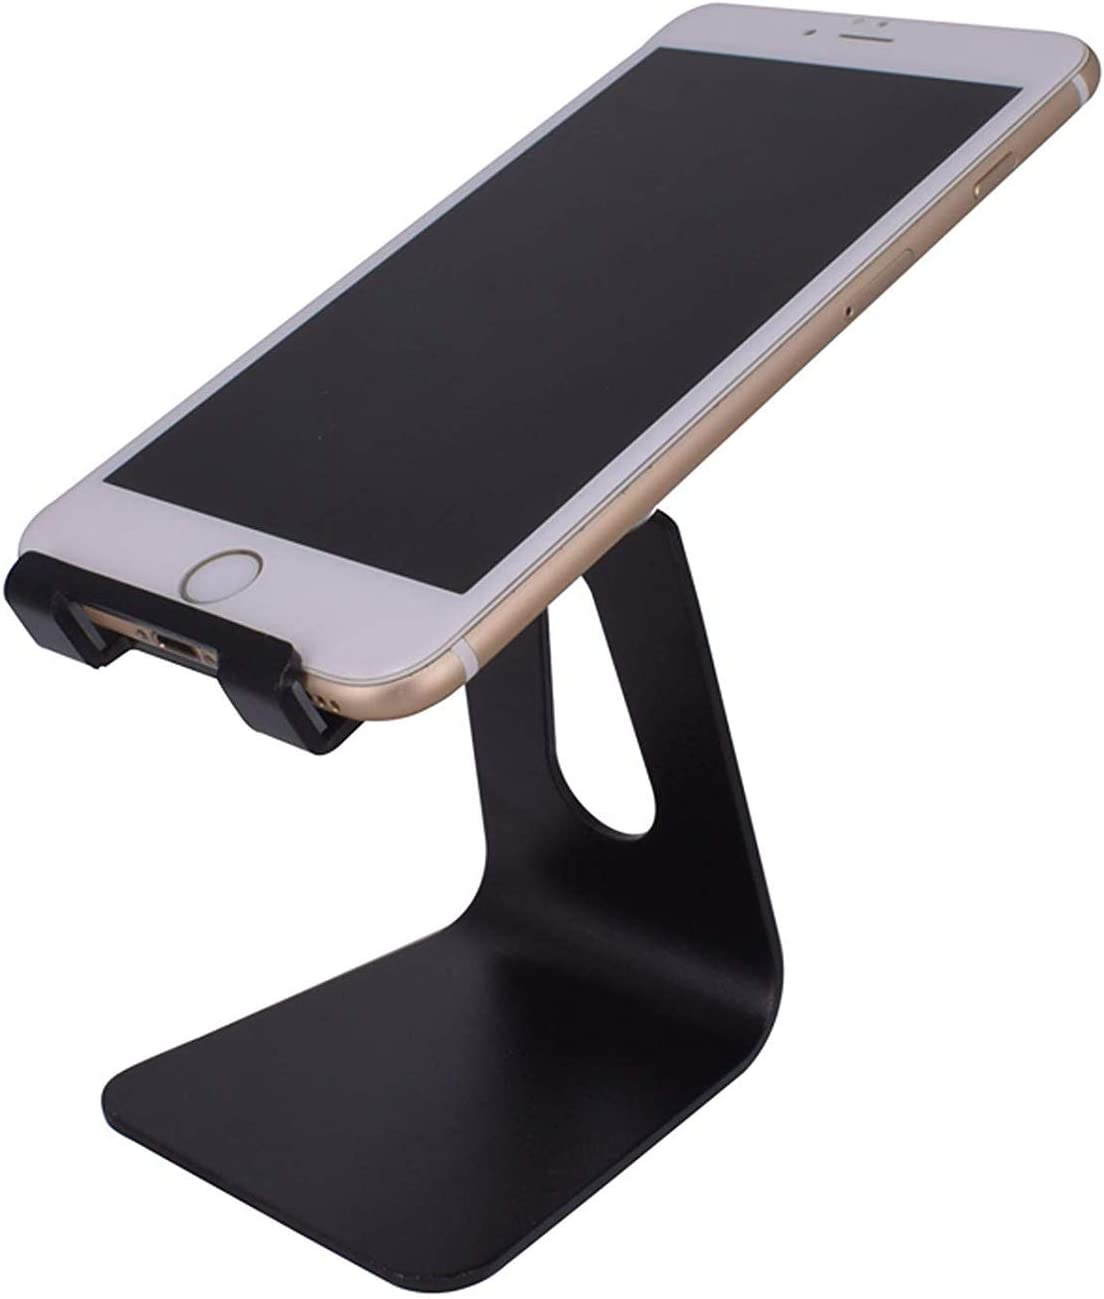 BYMZXBN Mobile Phone Holder Adjustable Mobile Phone Holder ABS Non-Slip Mobile Phone Holder for All Smart Phone Phone Holders